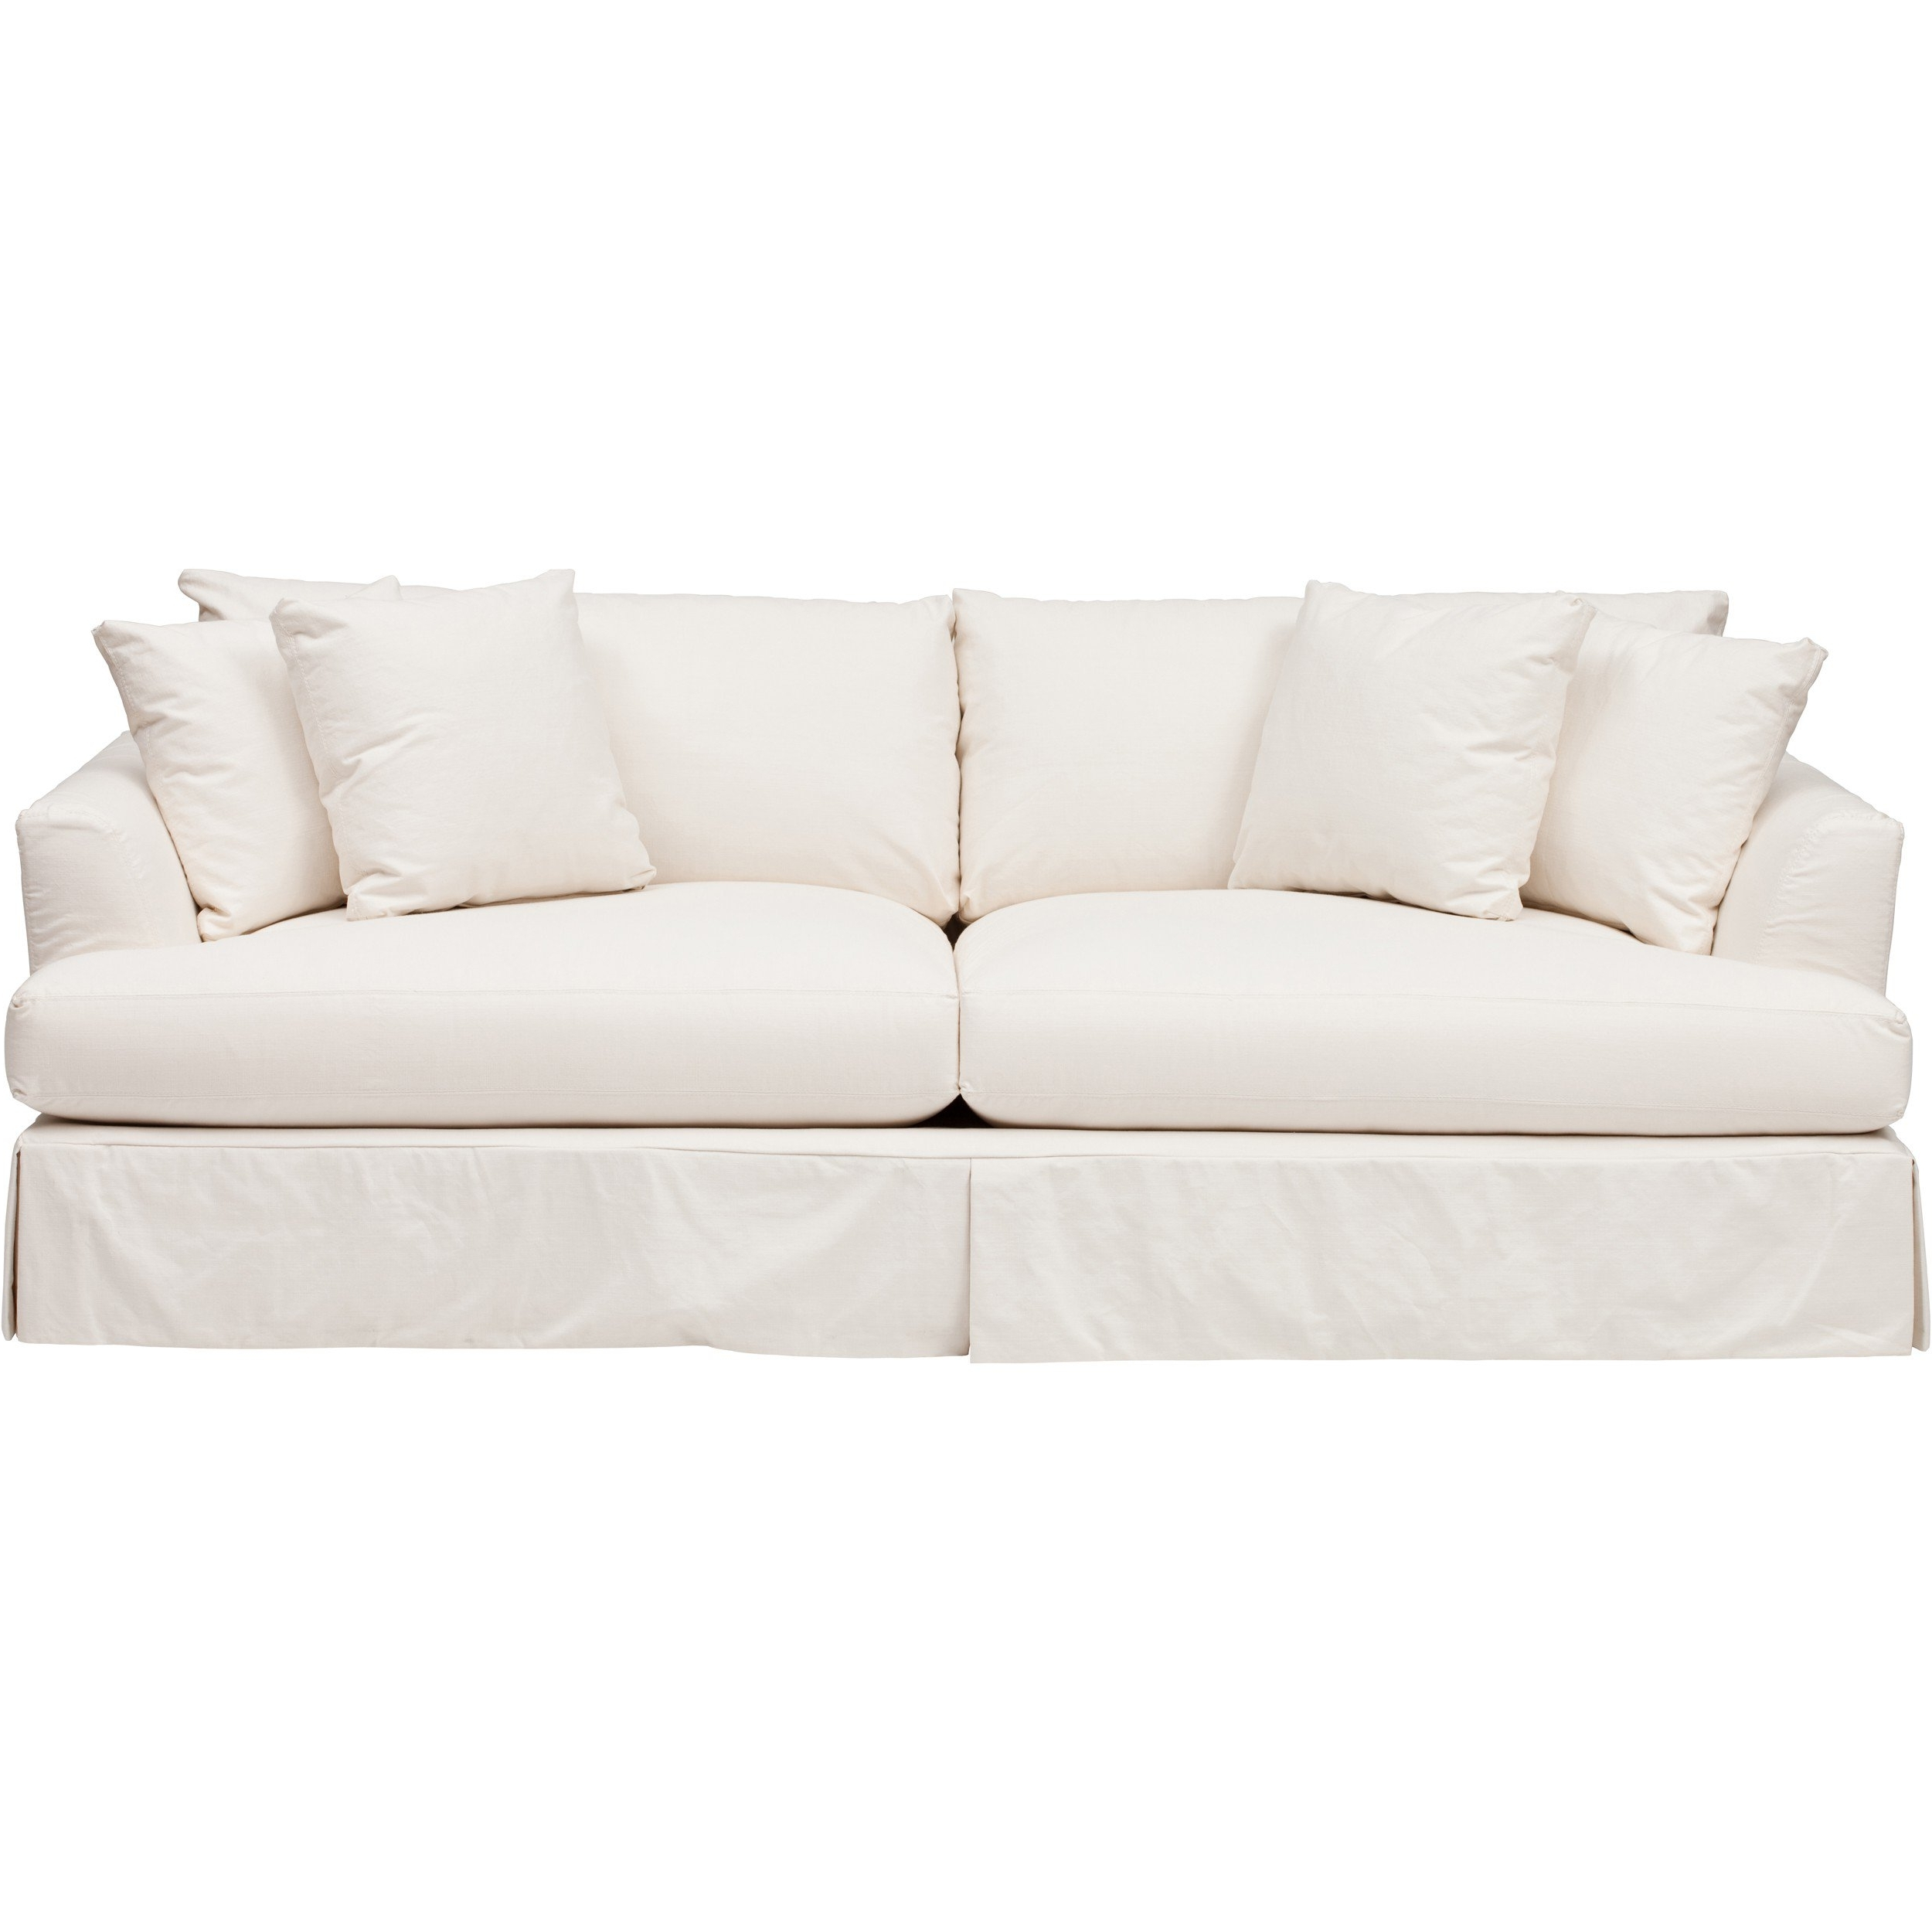 Well Known Slipcovers Sofas In Andre Slipcover Sofa, Dyno White – Sofas – Custom Upholstery (View 14 of 15)